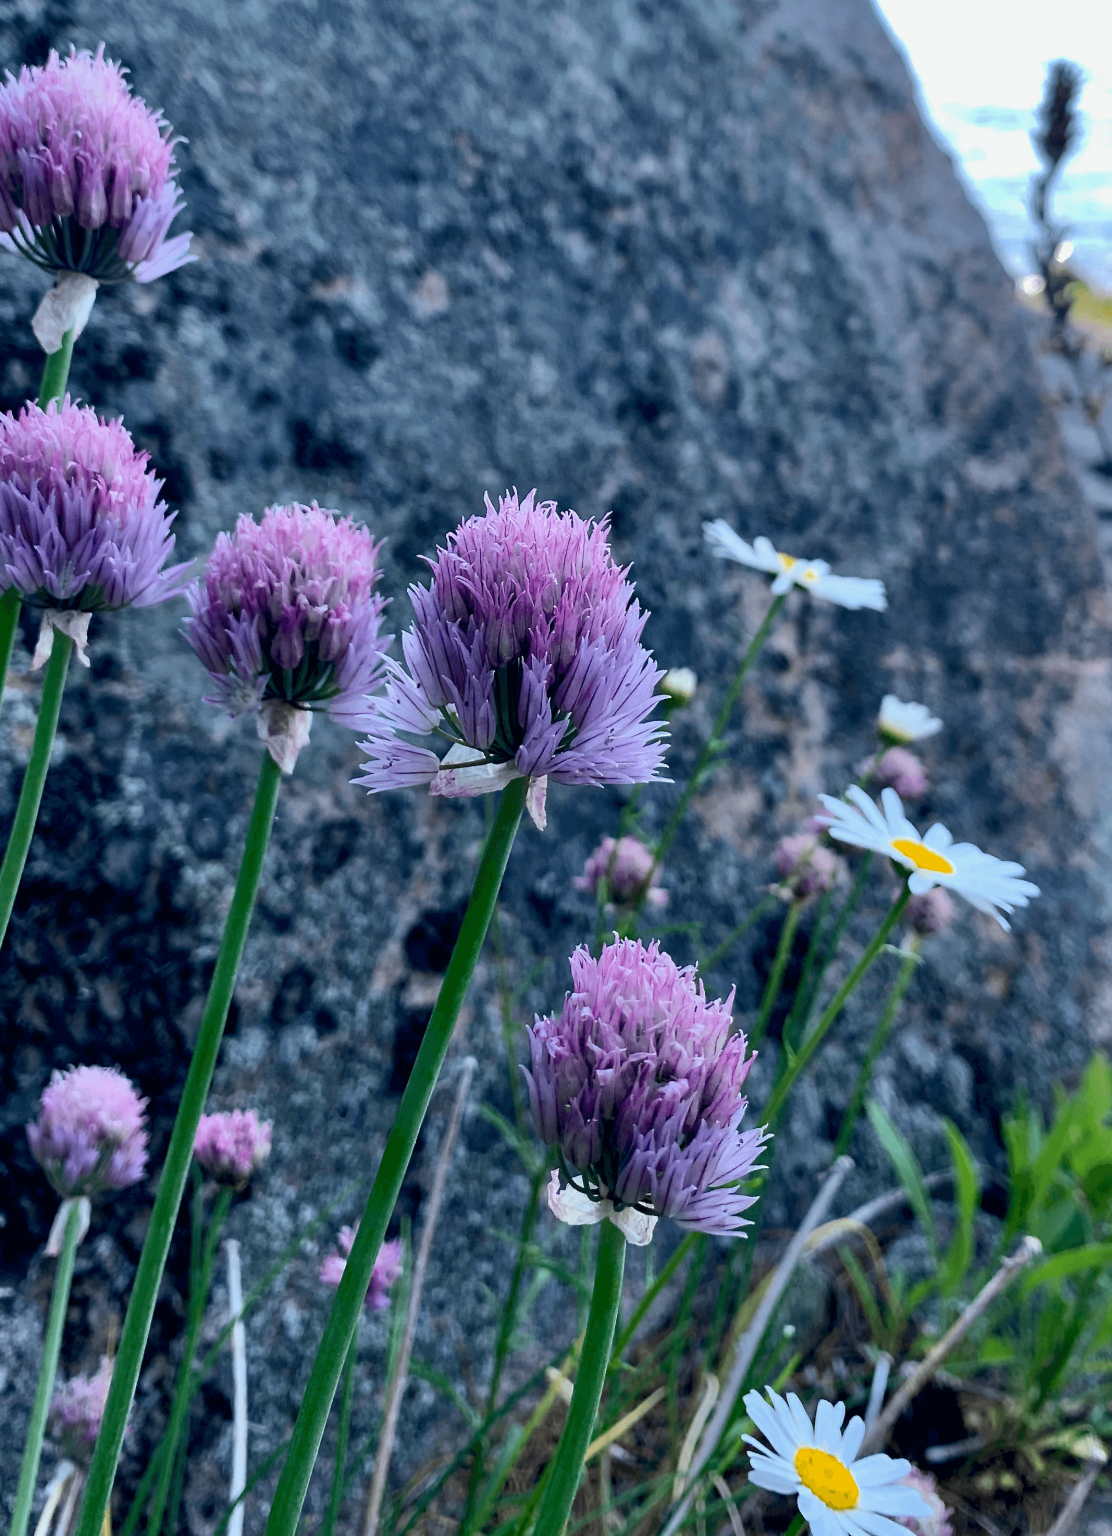 Chives beside the rock are going to seed and ideal for harvesting for micro-green gardening